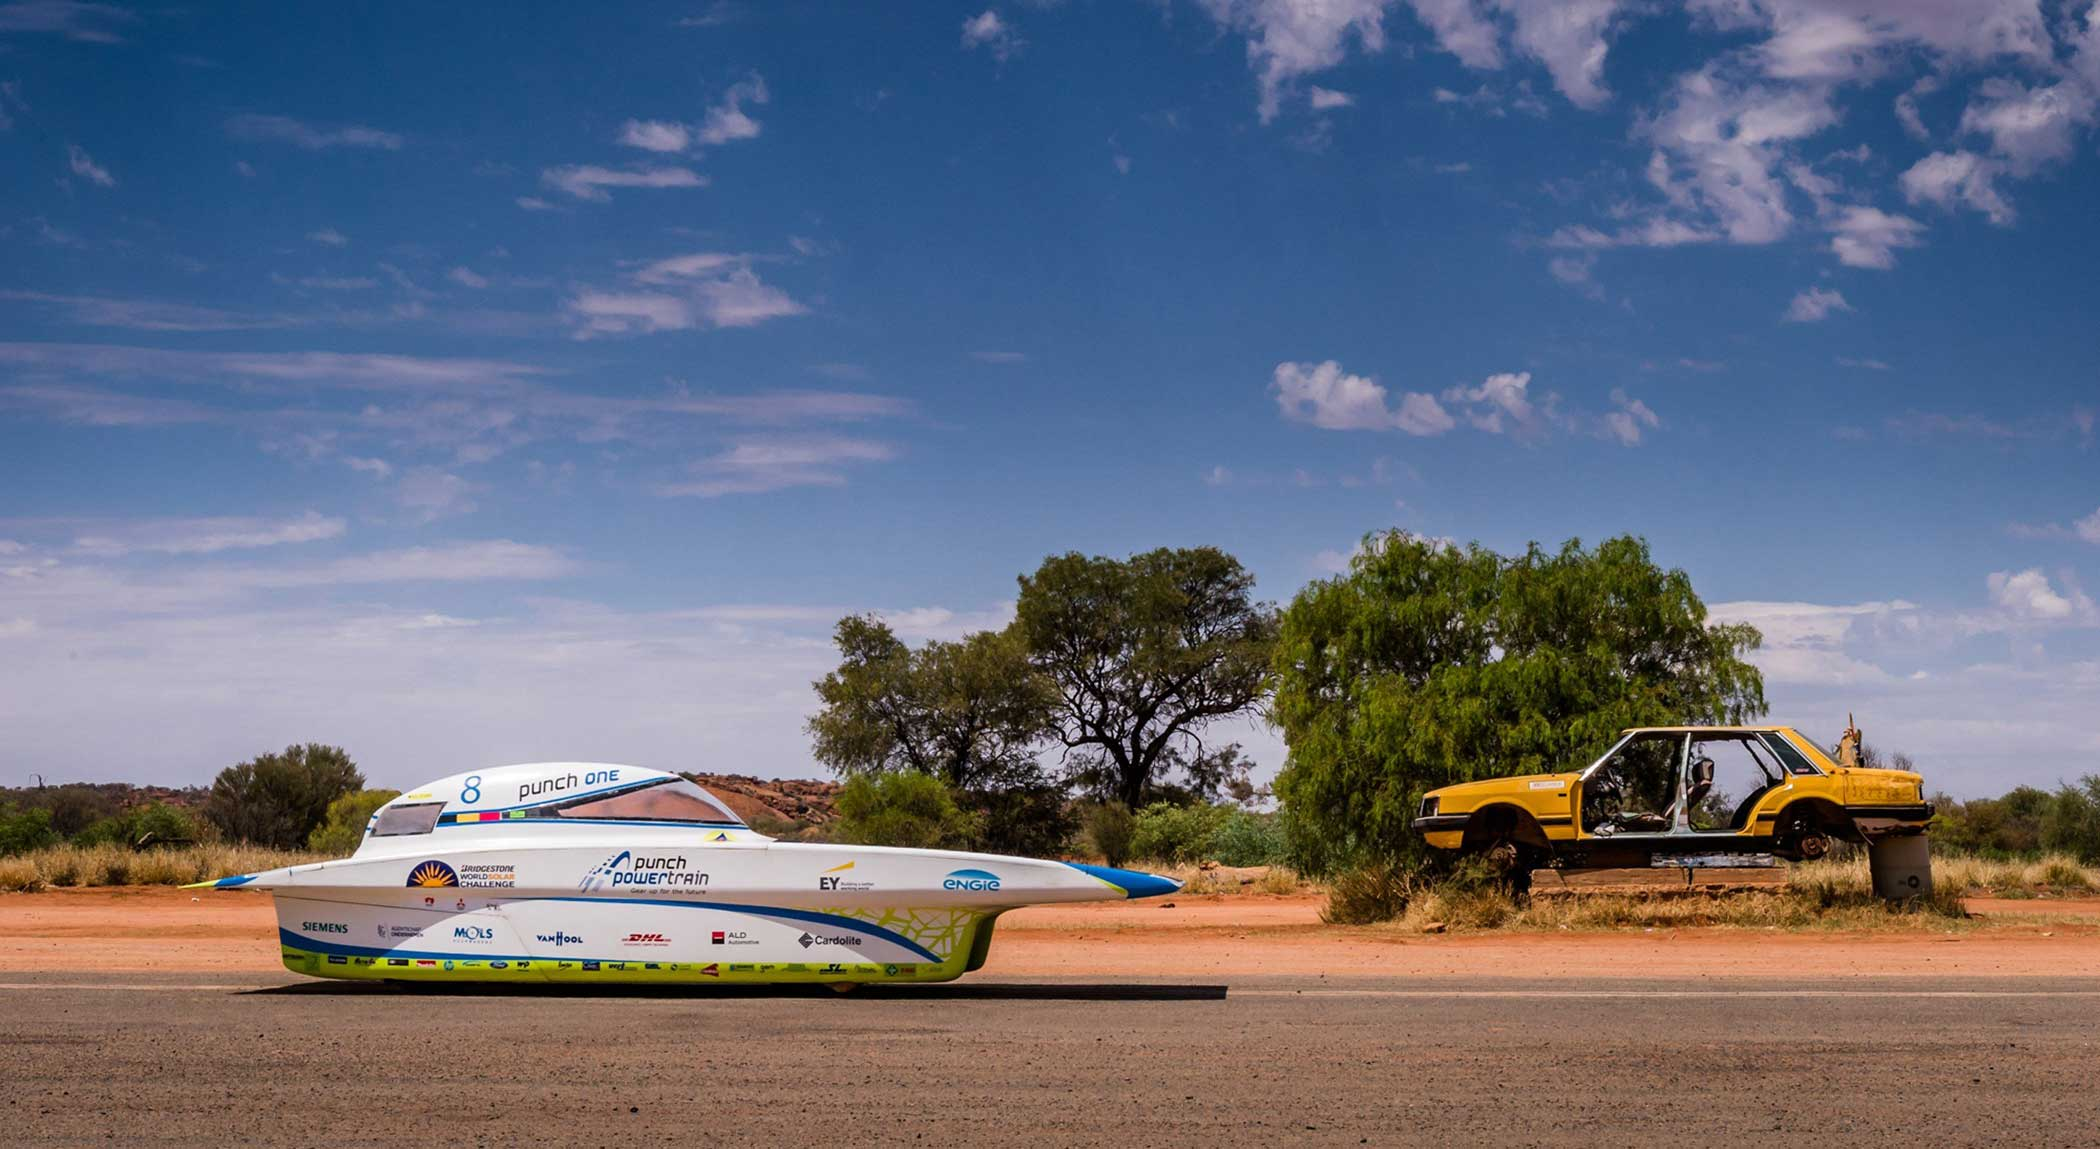 The Belgian Punch Powertrain Solar Team car on Oct. 20, 2015.